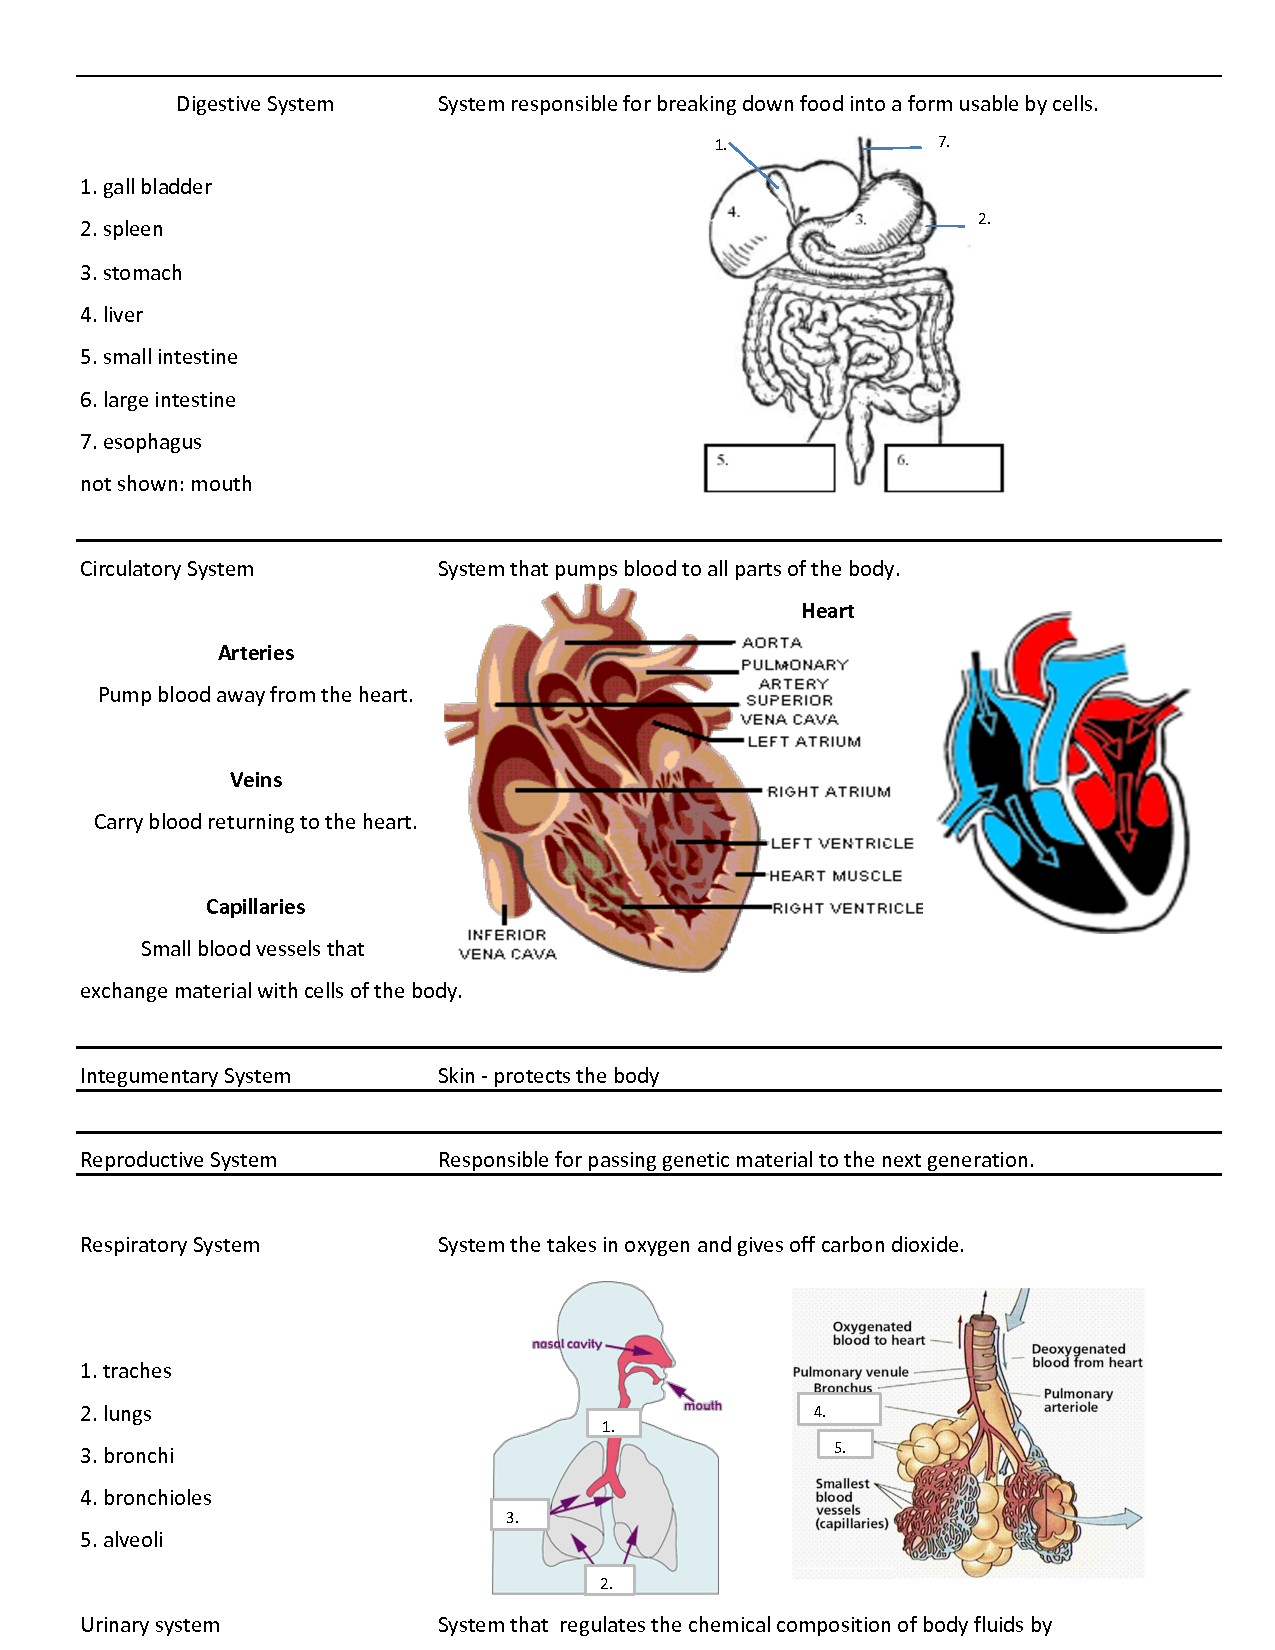 What Are the Organ Systems of the Human Body? - Video ...